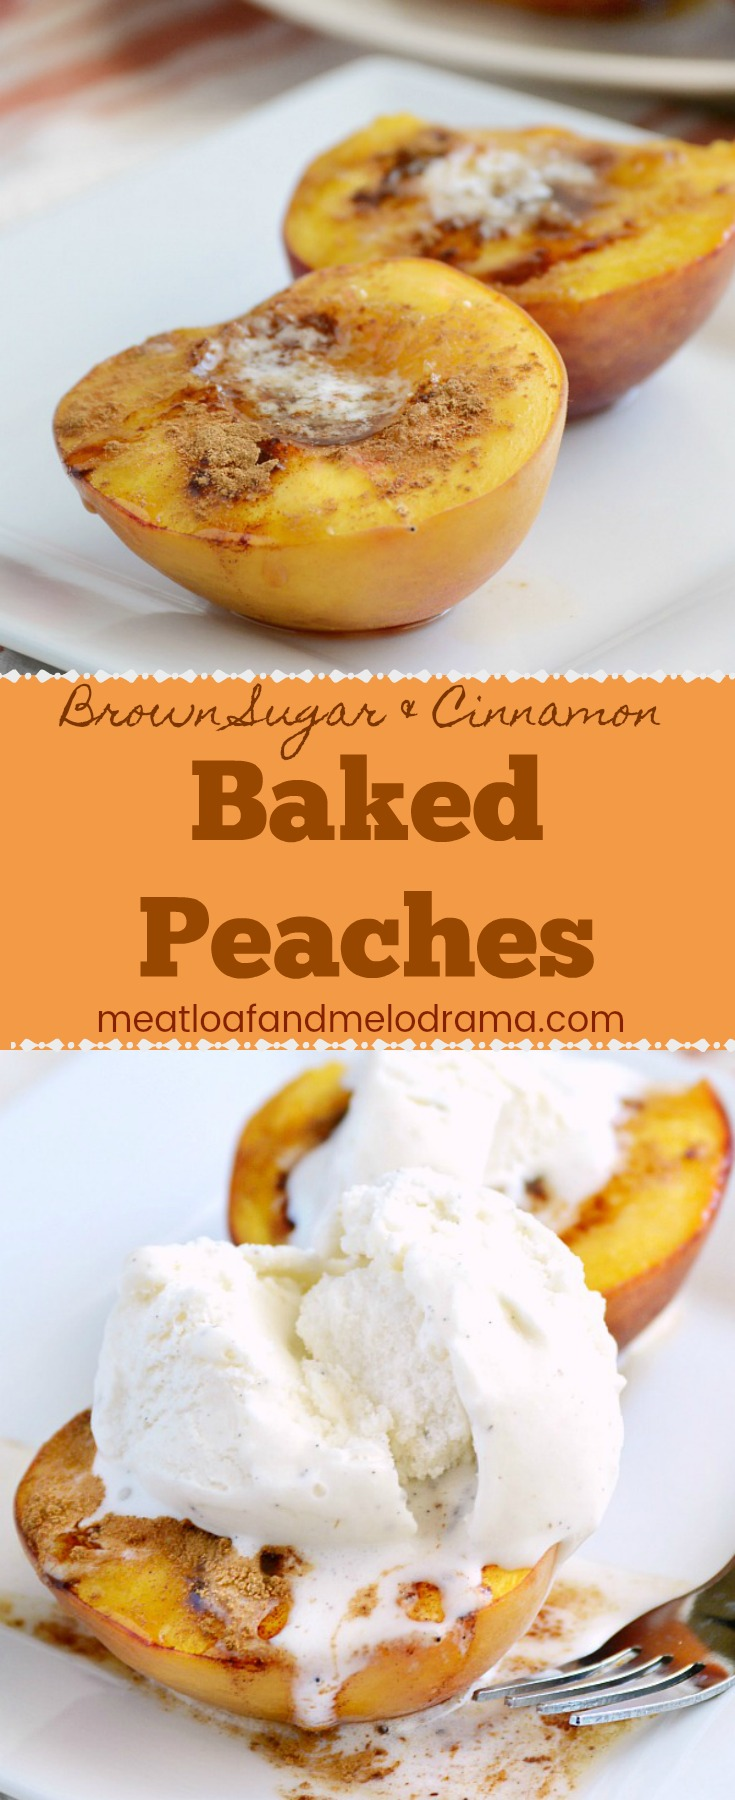 Brown Sugar Cinnamon Baked Peaches - A quick and easy summer dessert. Top with vanilla ice cream for a delicious dessert that is much easier than peach cobbler or crisp!